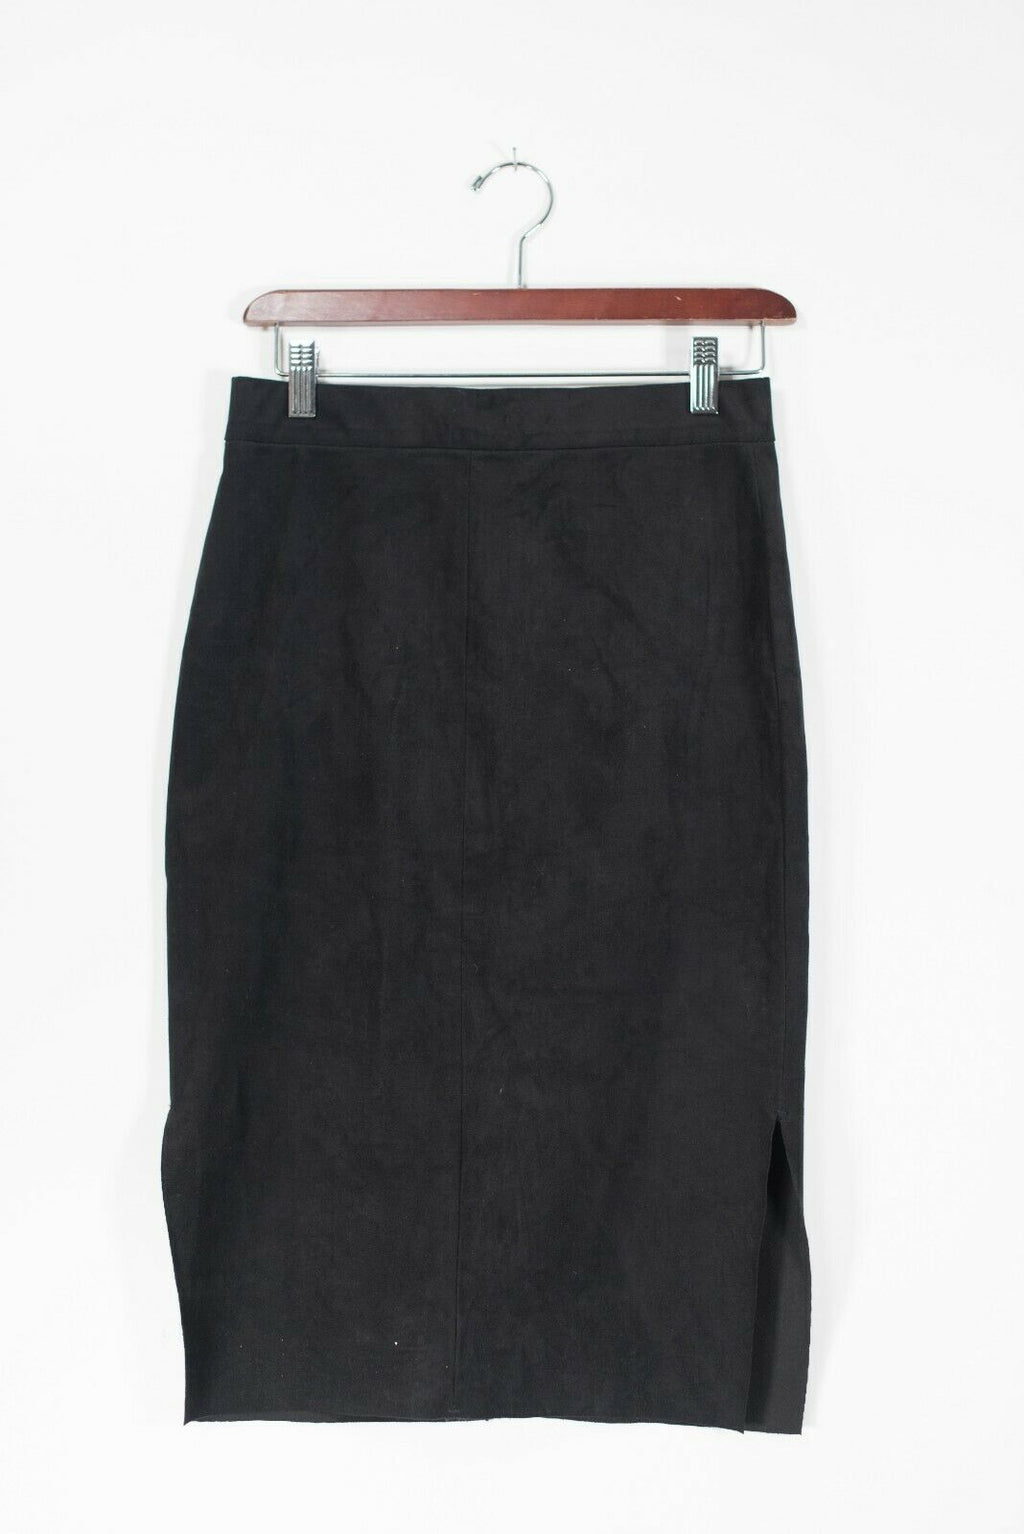 Wilfred Free Women's Size 2 XS Black Skirt Faux Suede Short Knee Length Stretch